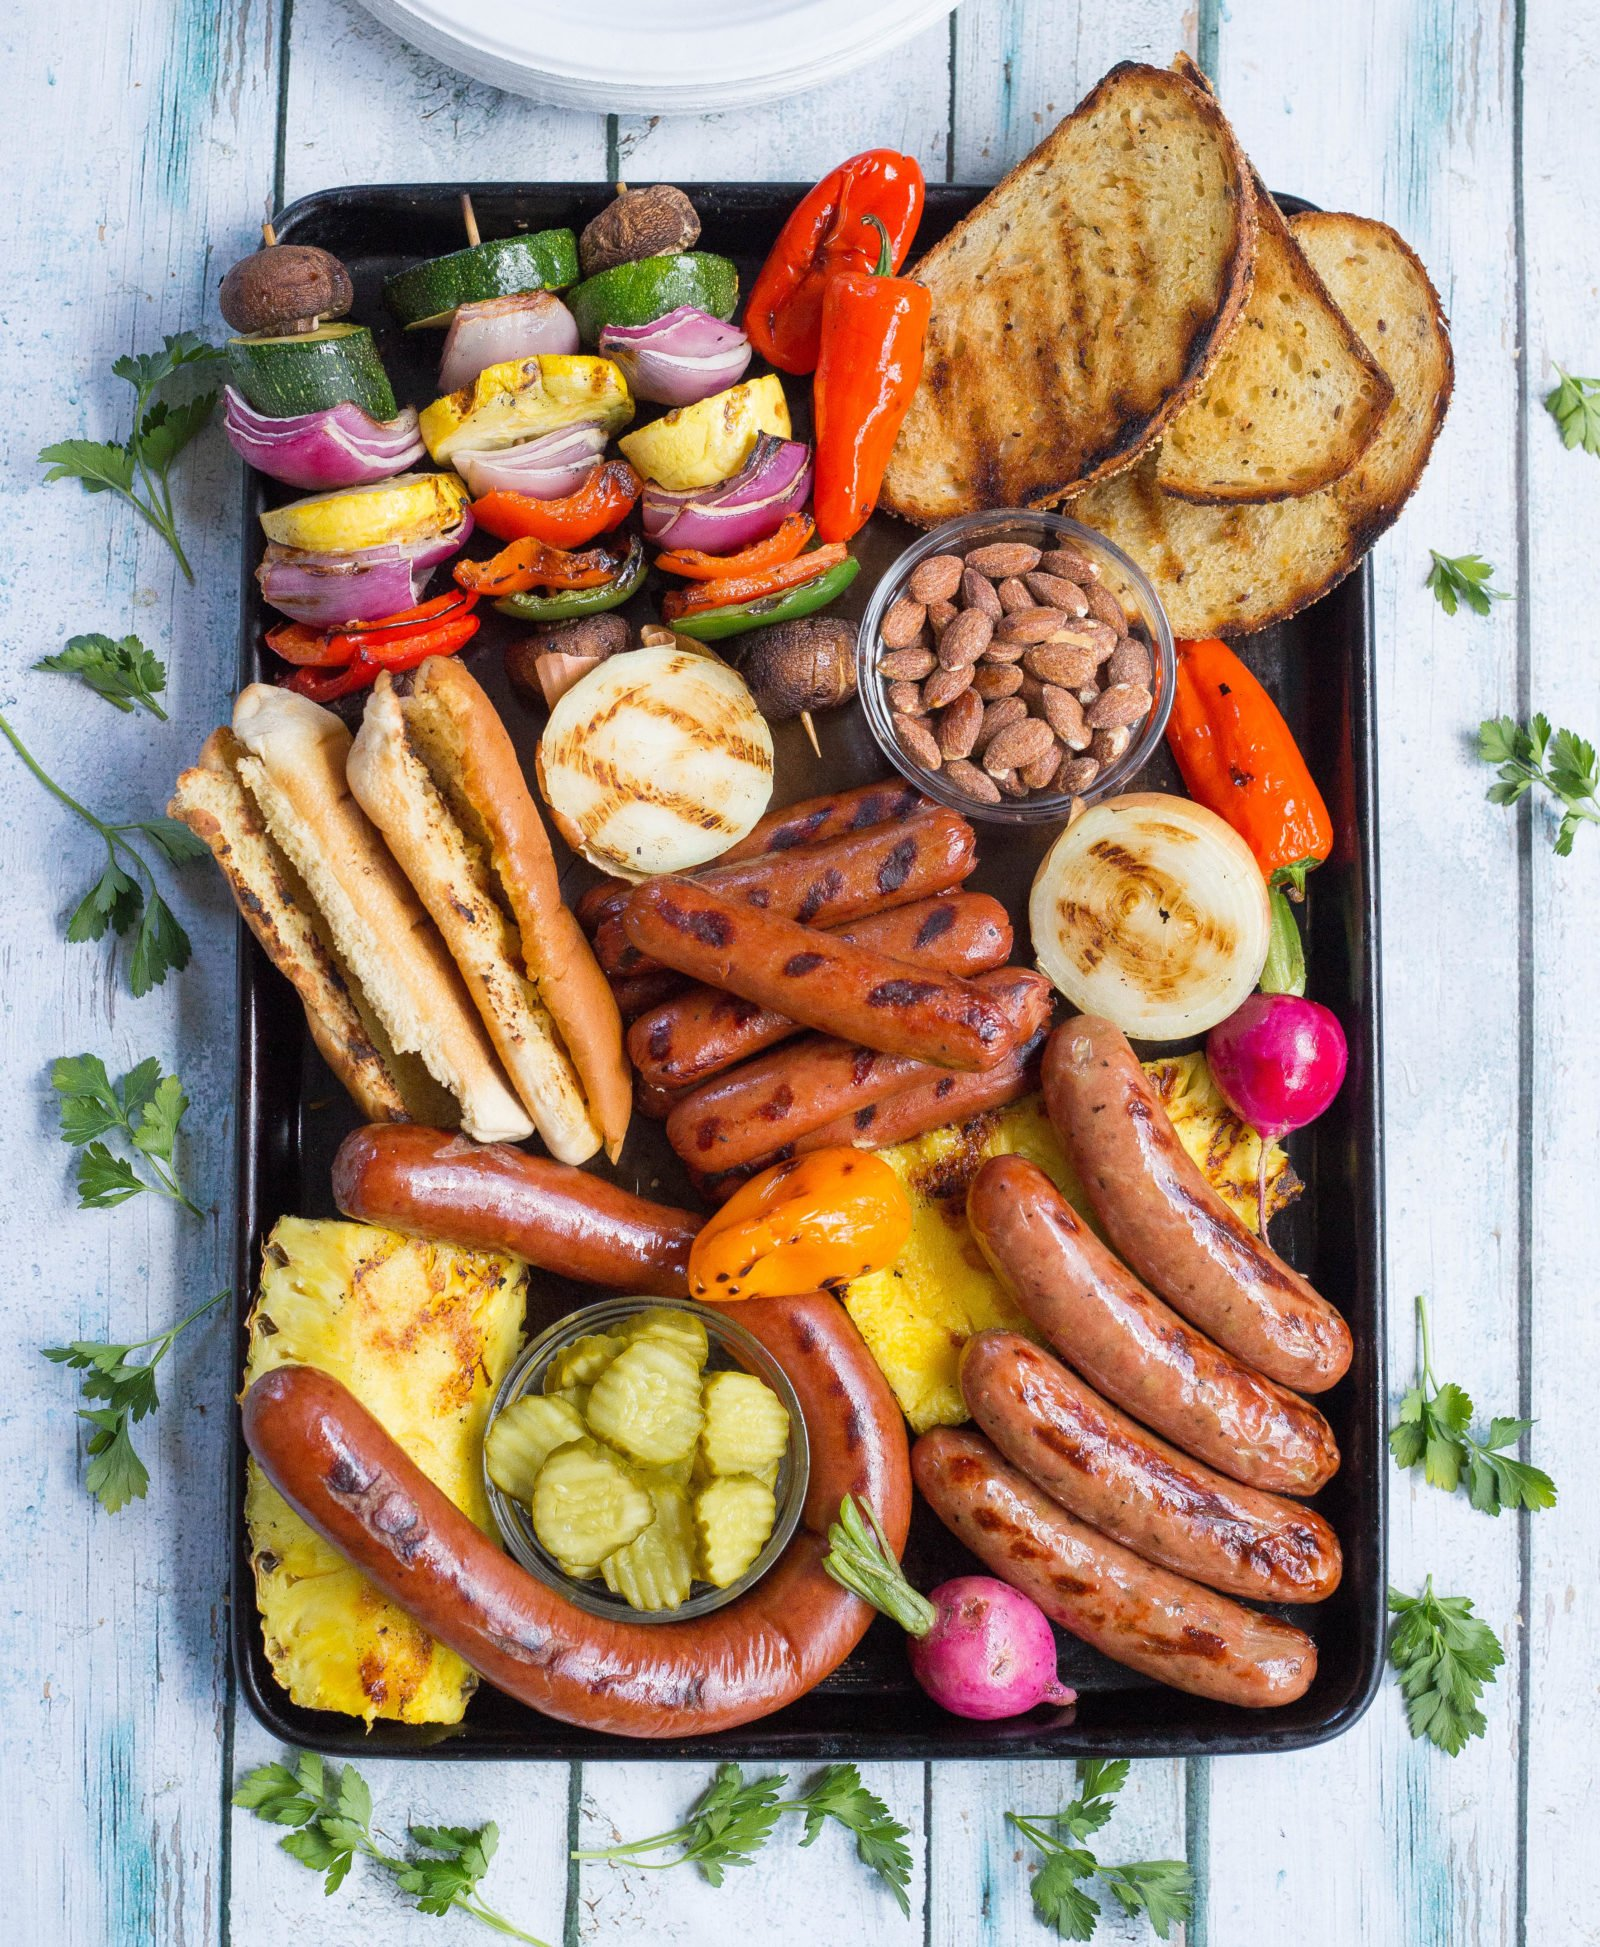 Platter with grilled hot dogs, sausages, pickles, pineapple, peppers, almonds, and bread